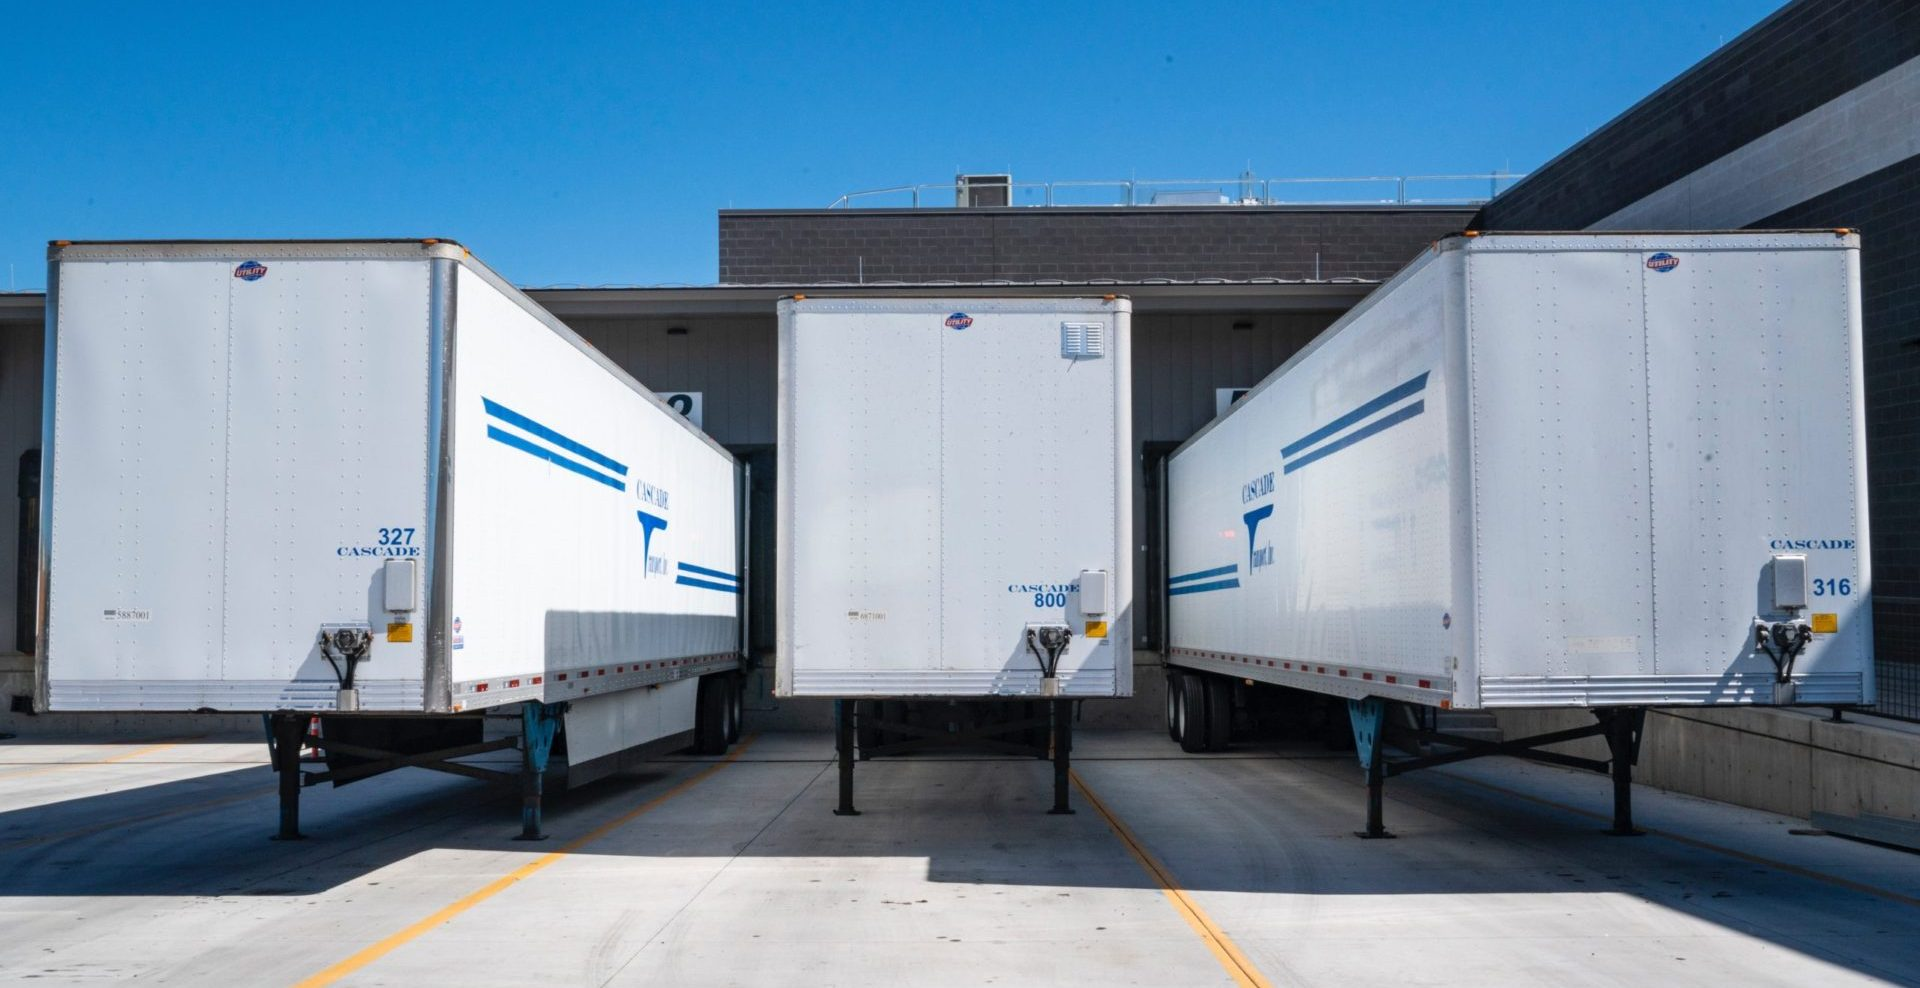 outdoor warehouse dock with trailers